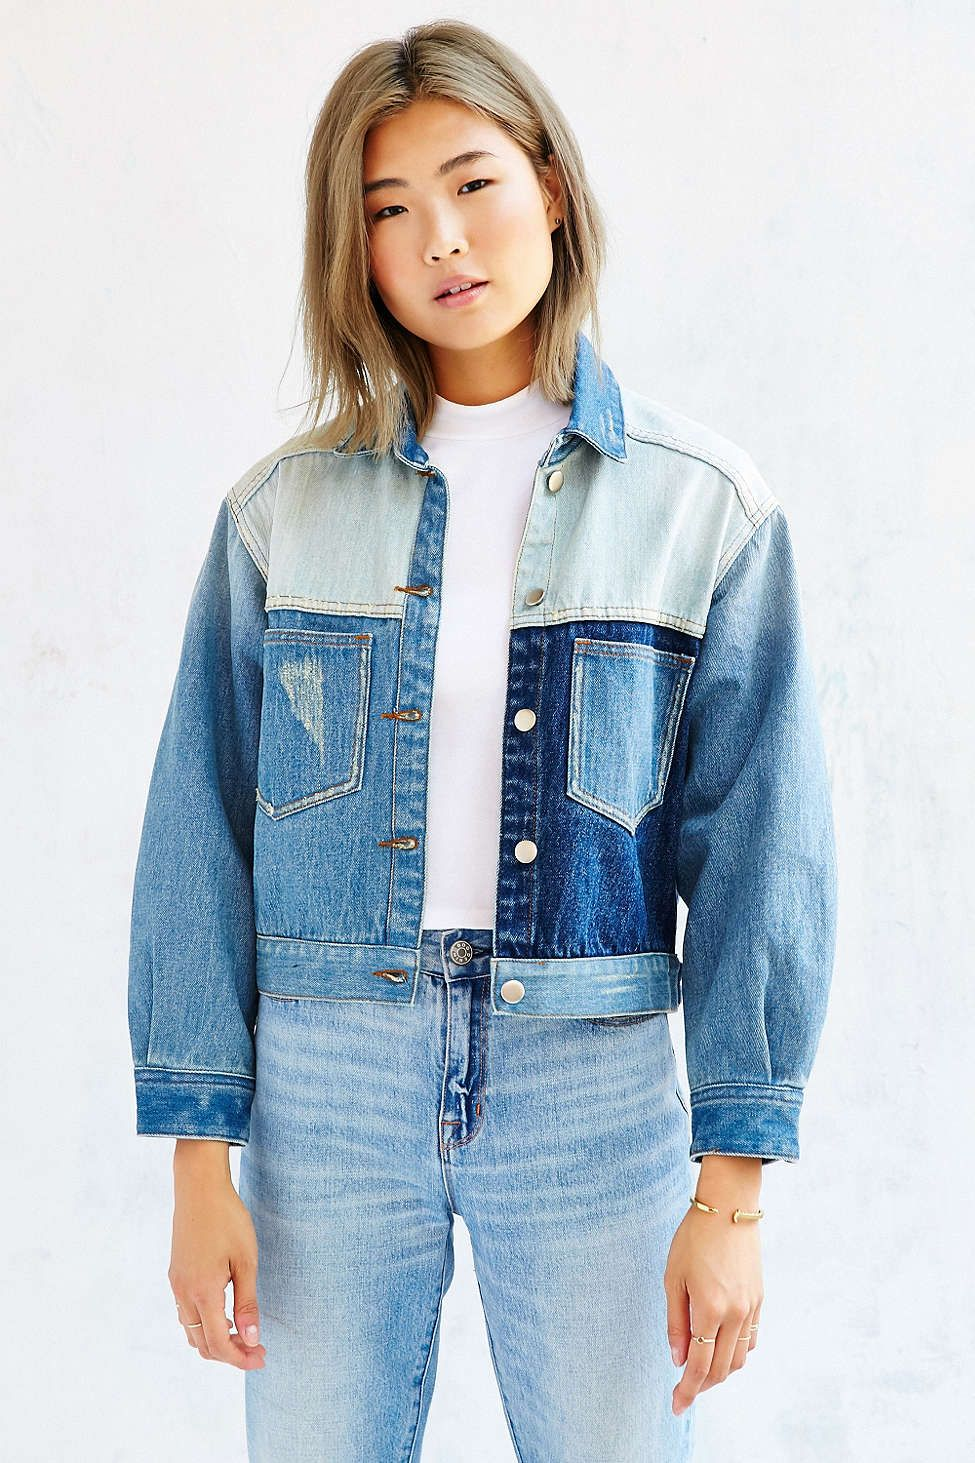 3fbed88704 Urban Outfitters UNIF Denim Colorblocked Jacket  145